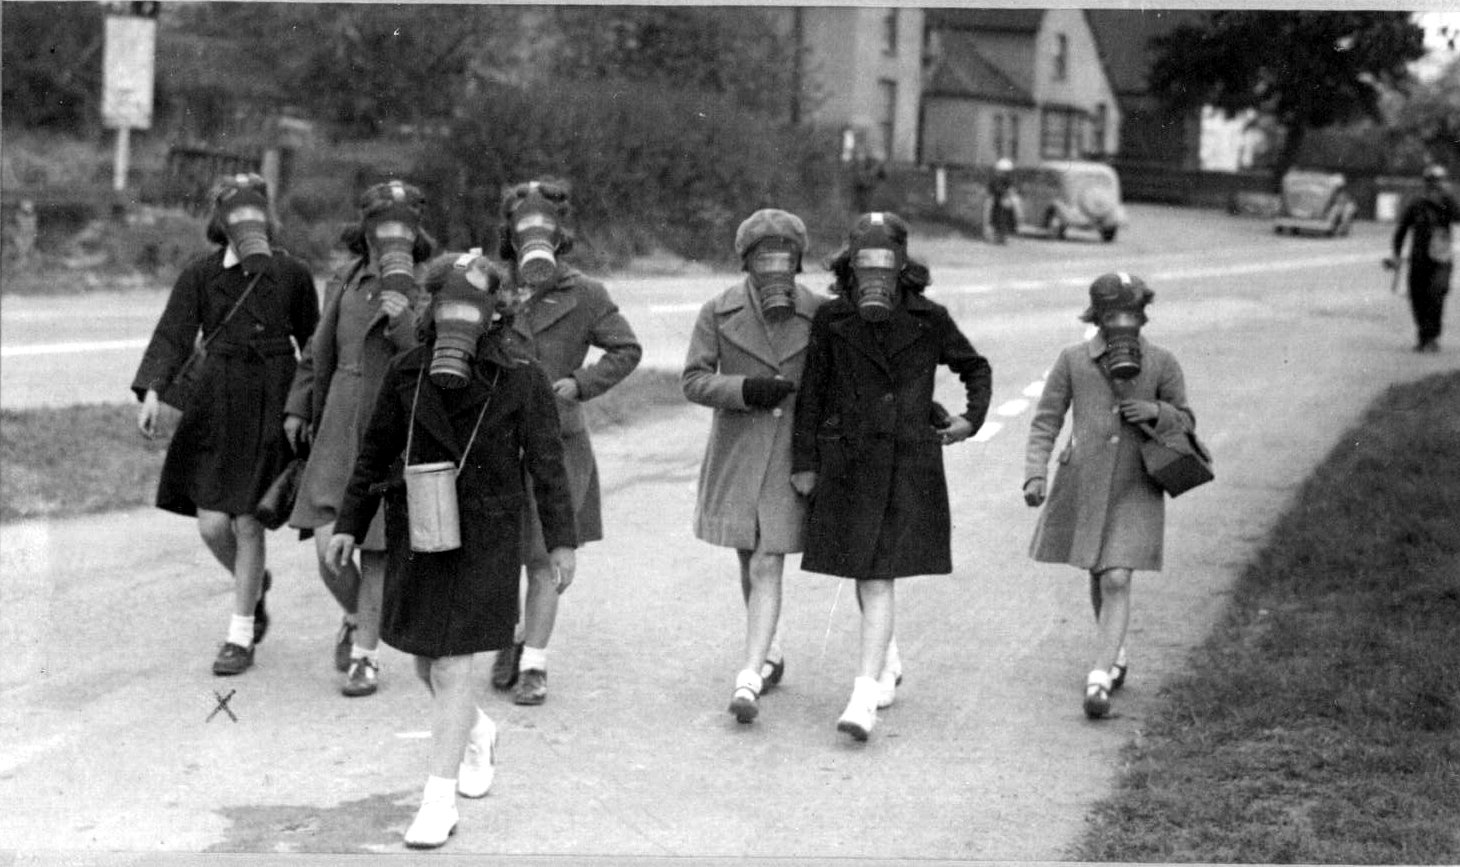 Http Commons Wikimedia Org Wiki File Gas Mask Practice Hallow School 1940s Jpg